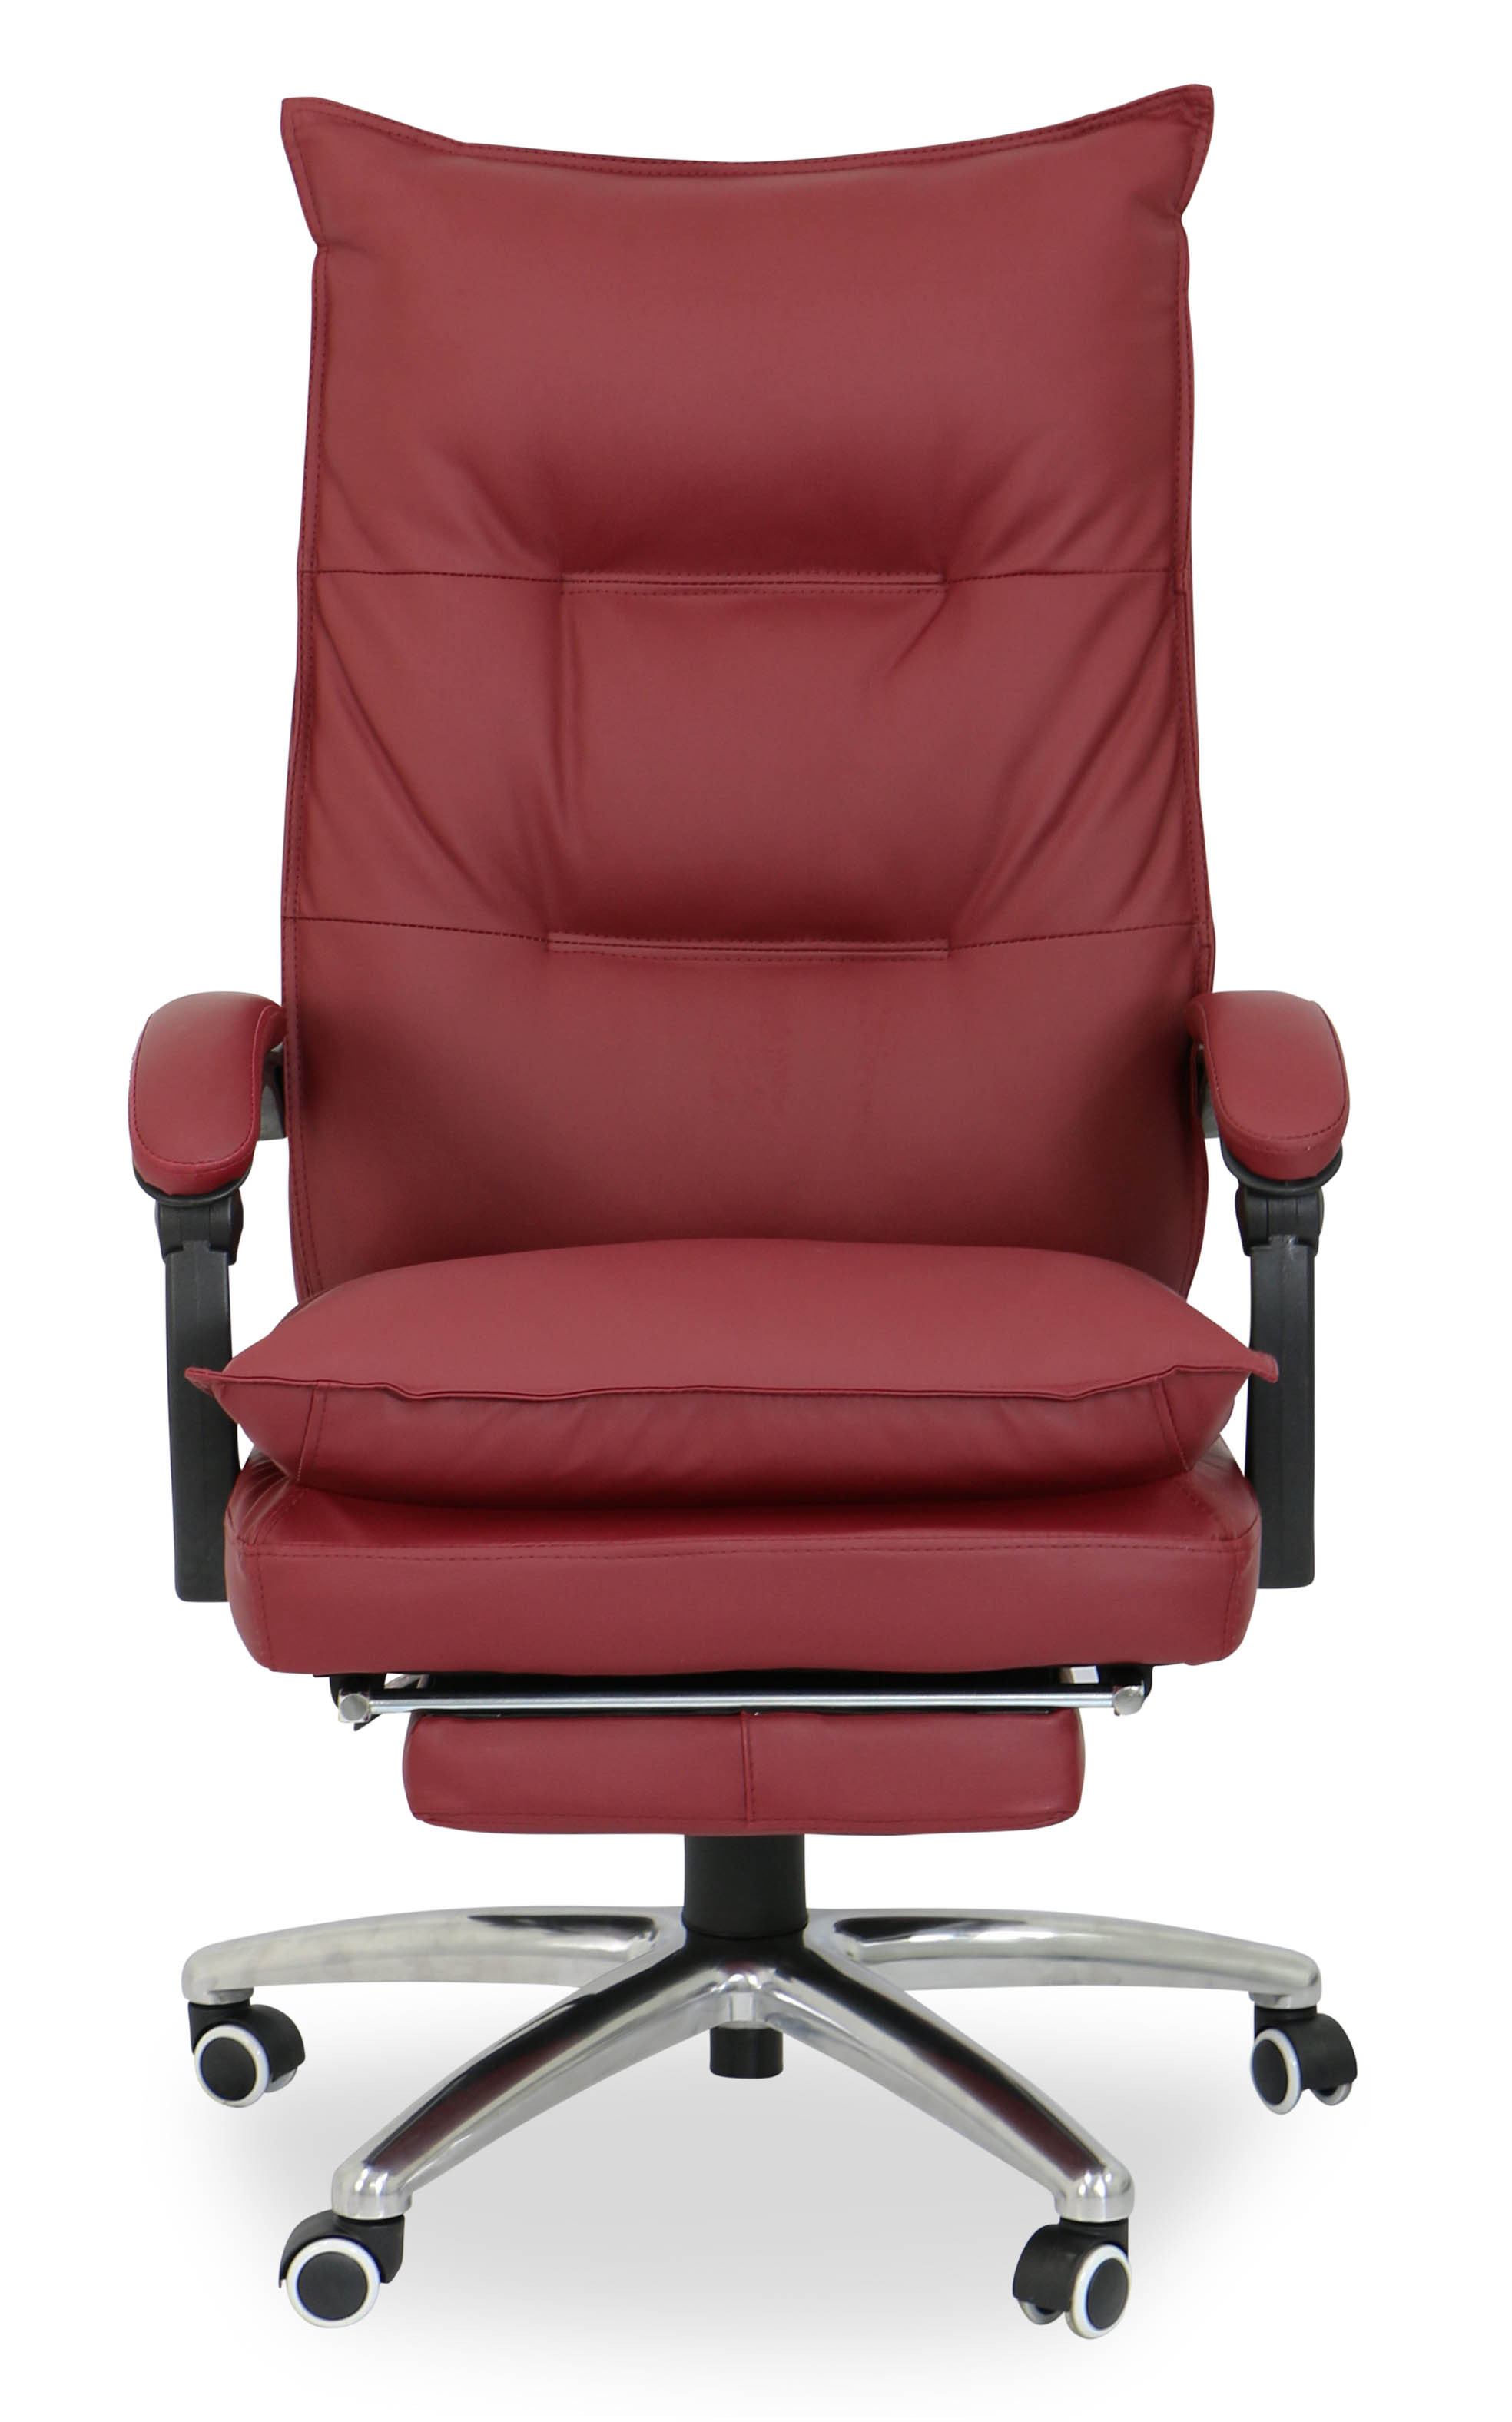 Deluxe Pu Executive fice Chair Maroon